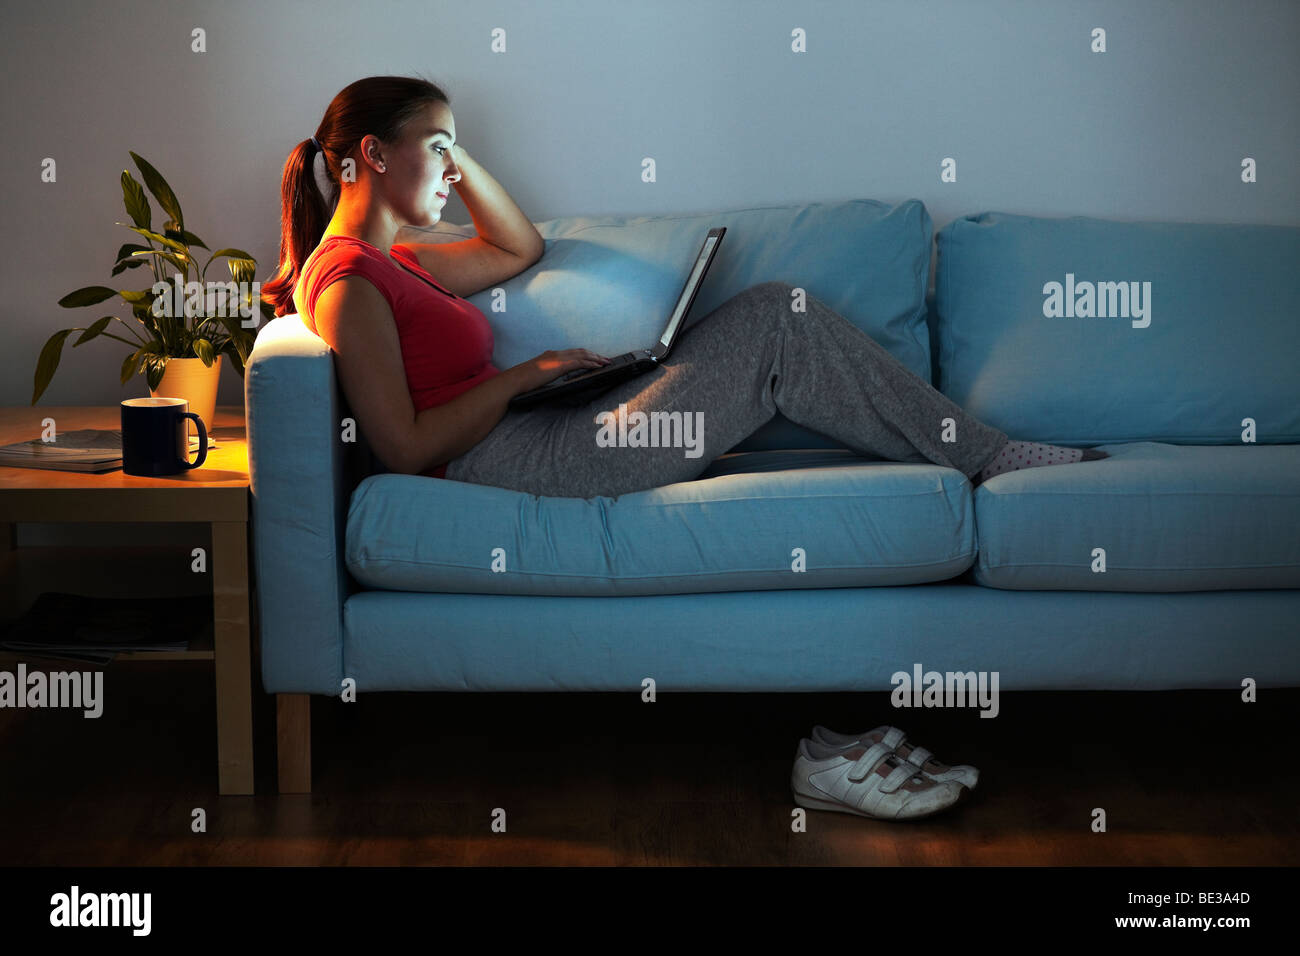 Young woman on sofa with laptop - Stock Image